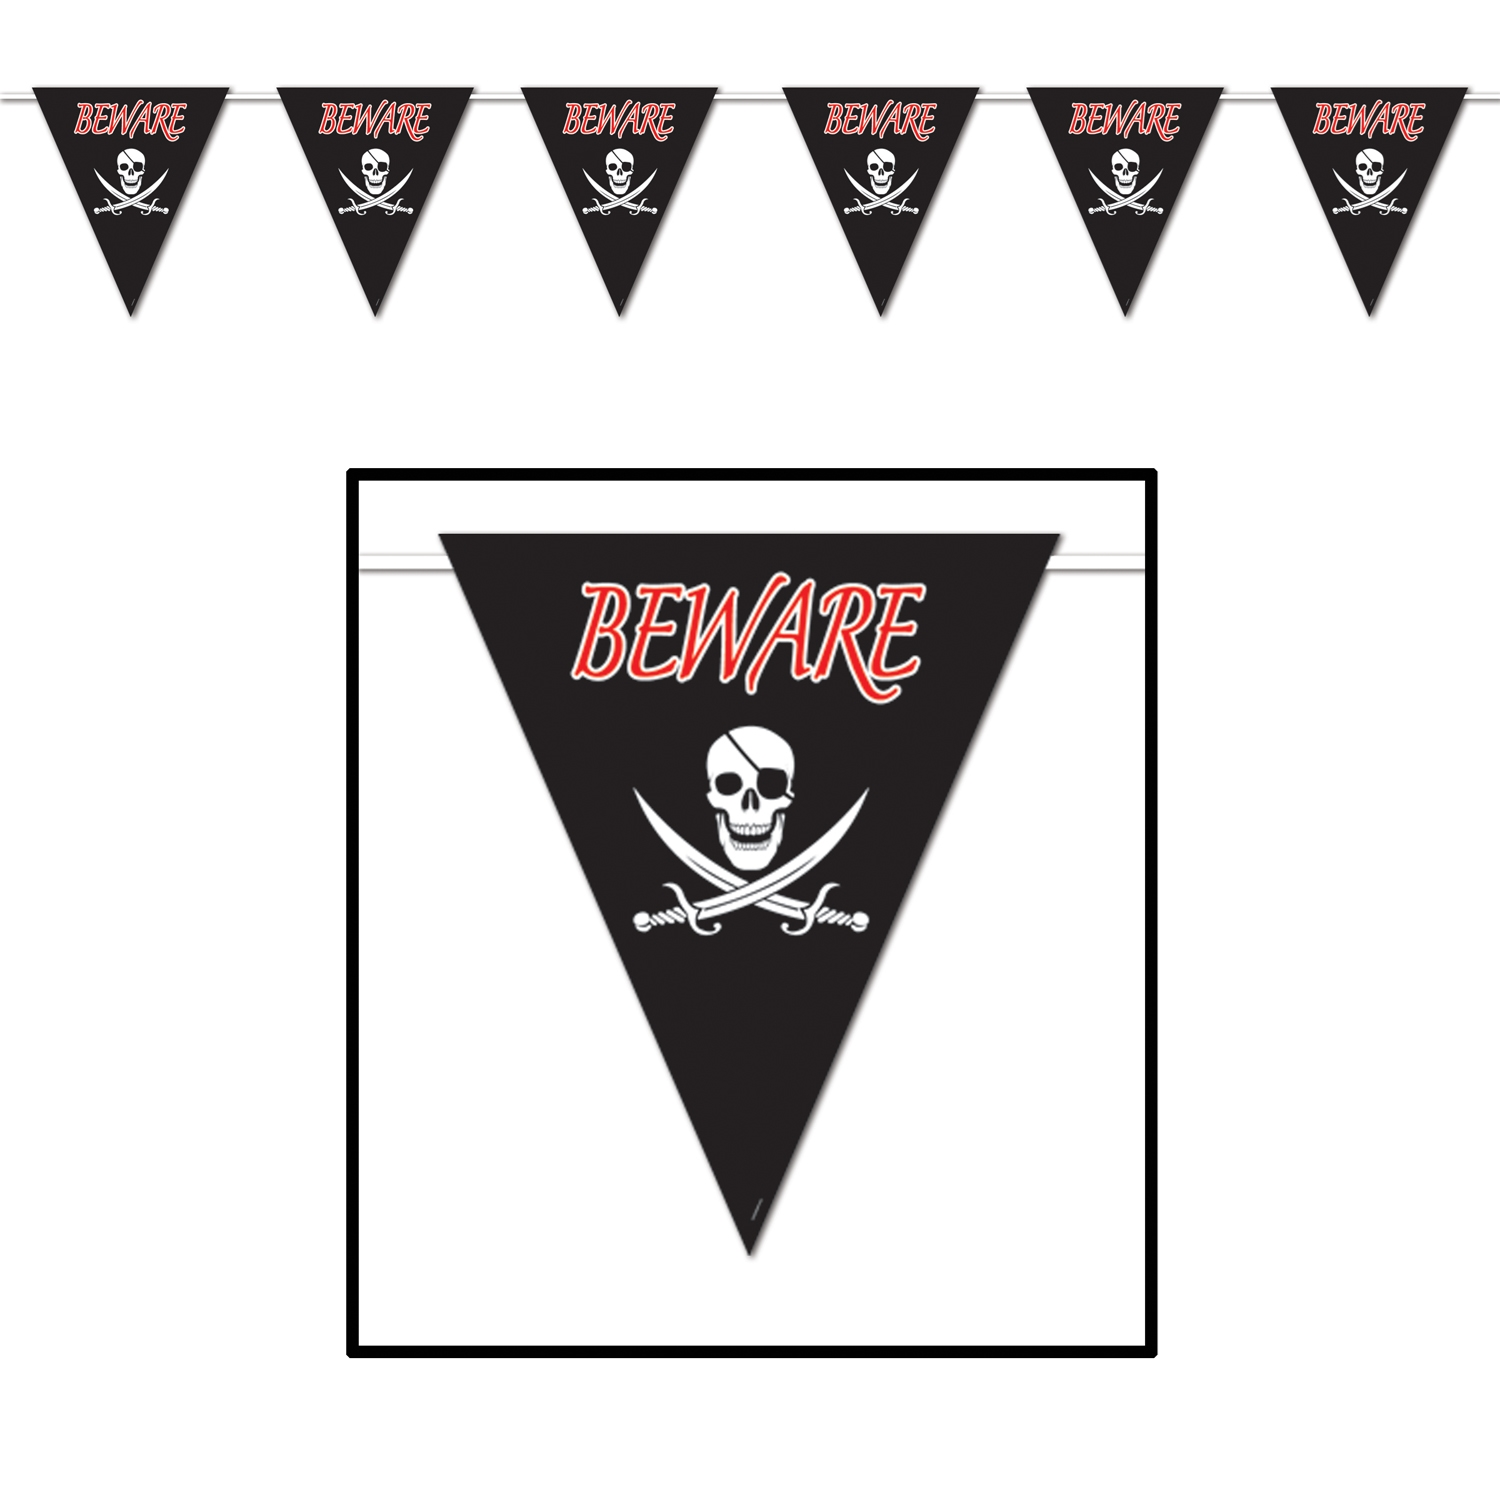 Beware Of Pirates Giant Pennant Banner (Pack of 12) Beware Of Pirates Giant Pennant Banner, decoration, pirate theme, new years eve, halloween, inexpensive, wholesale, bulk